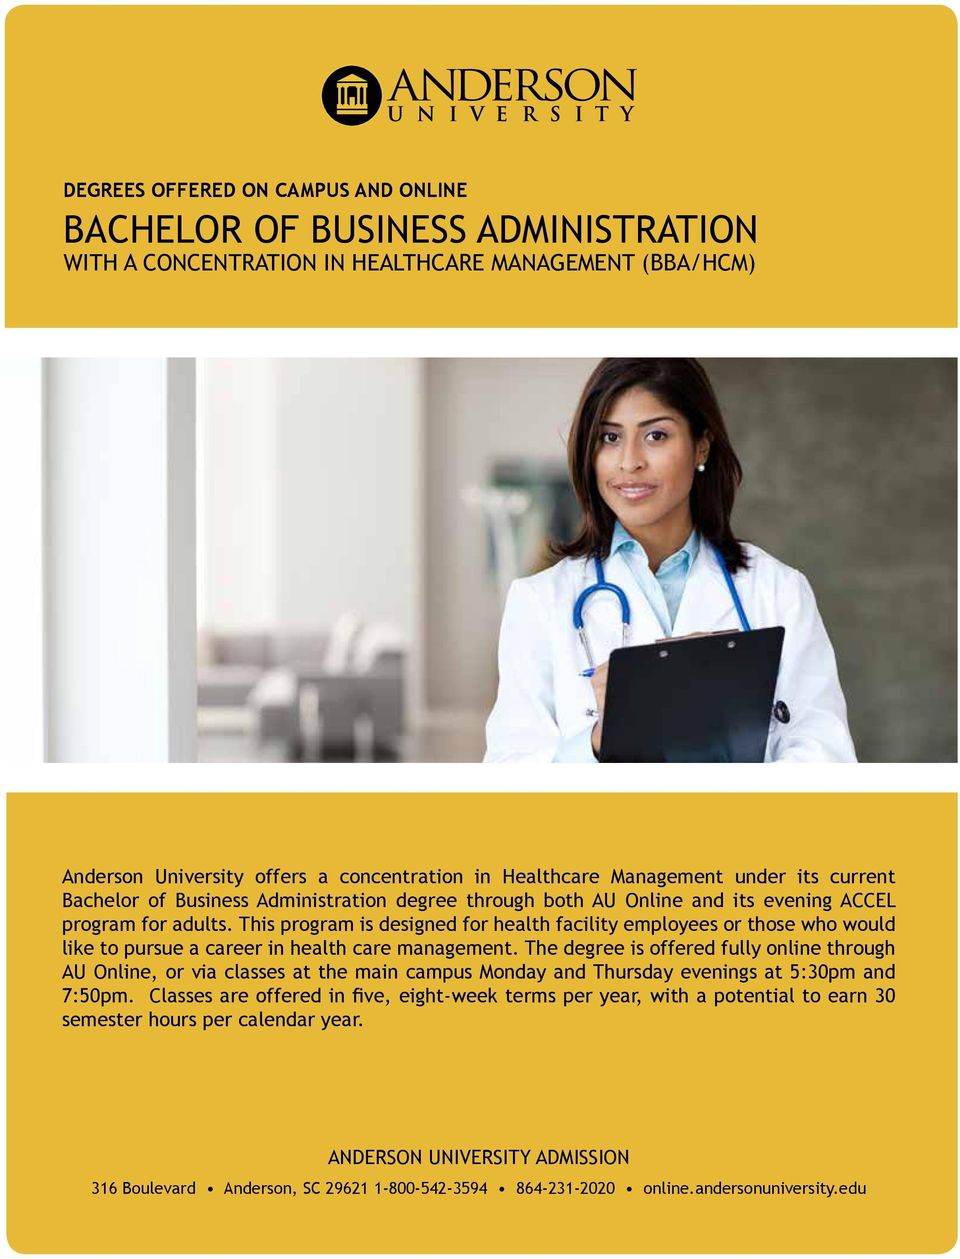 This program is designed for health facility employees or those who would like to pursue a career in health care management.